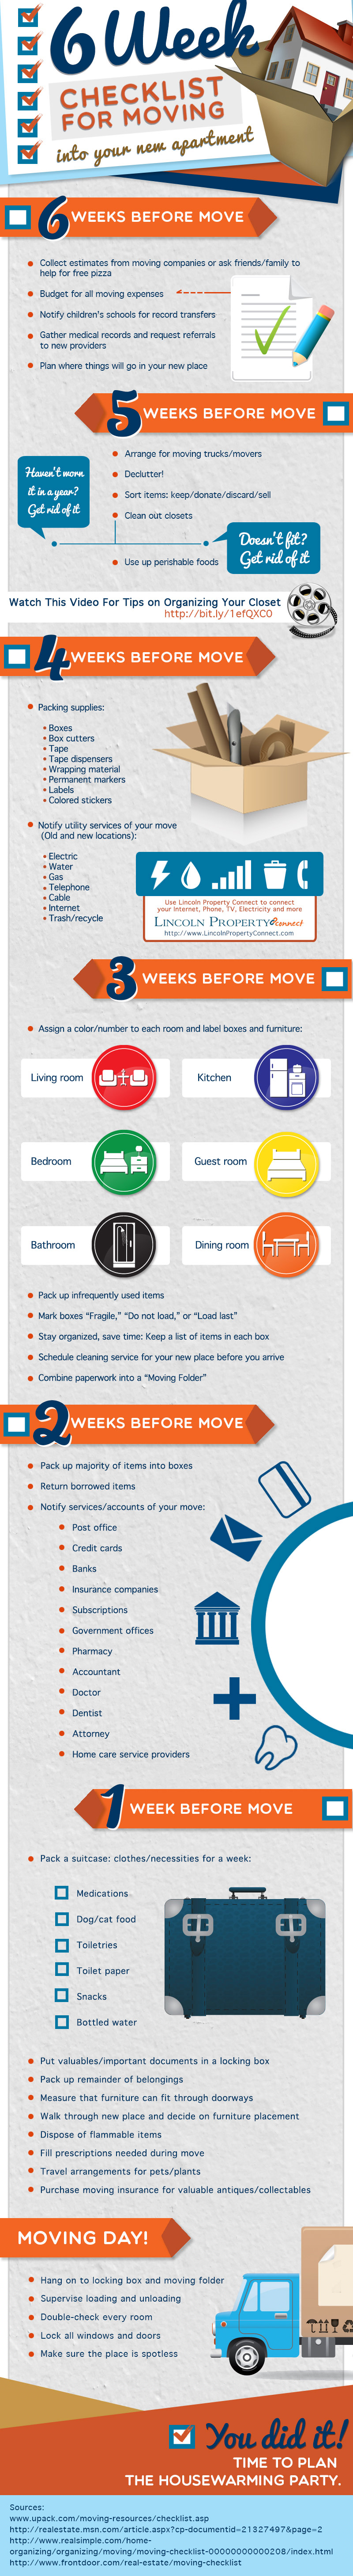 6week checklist moving your new apartment